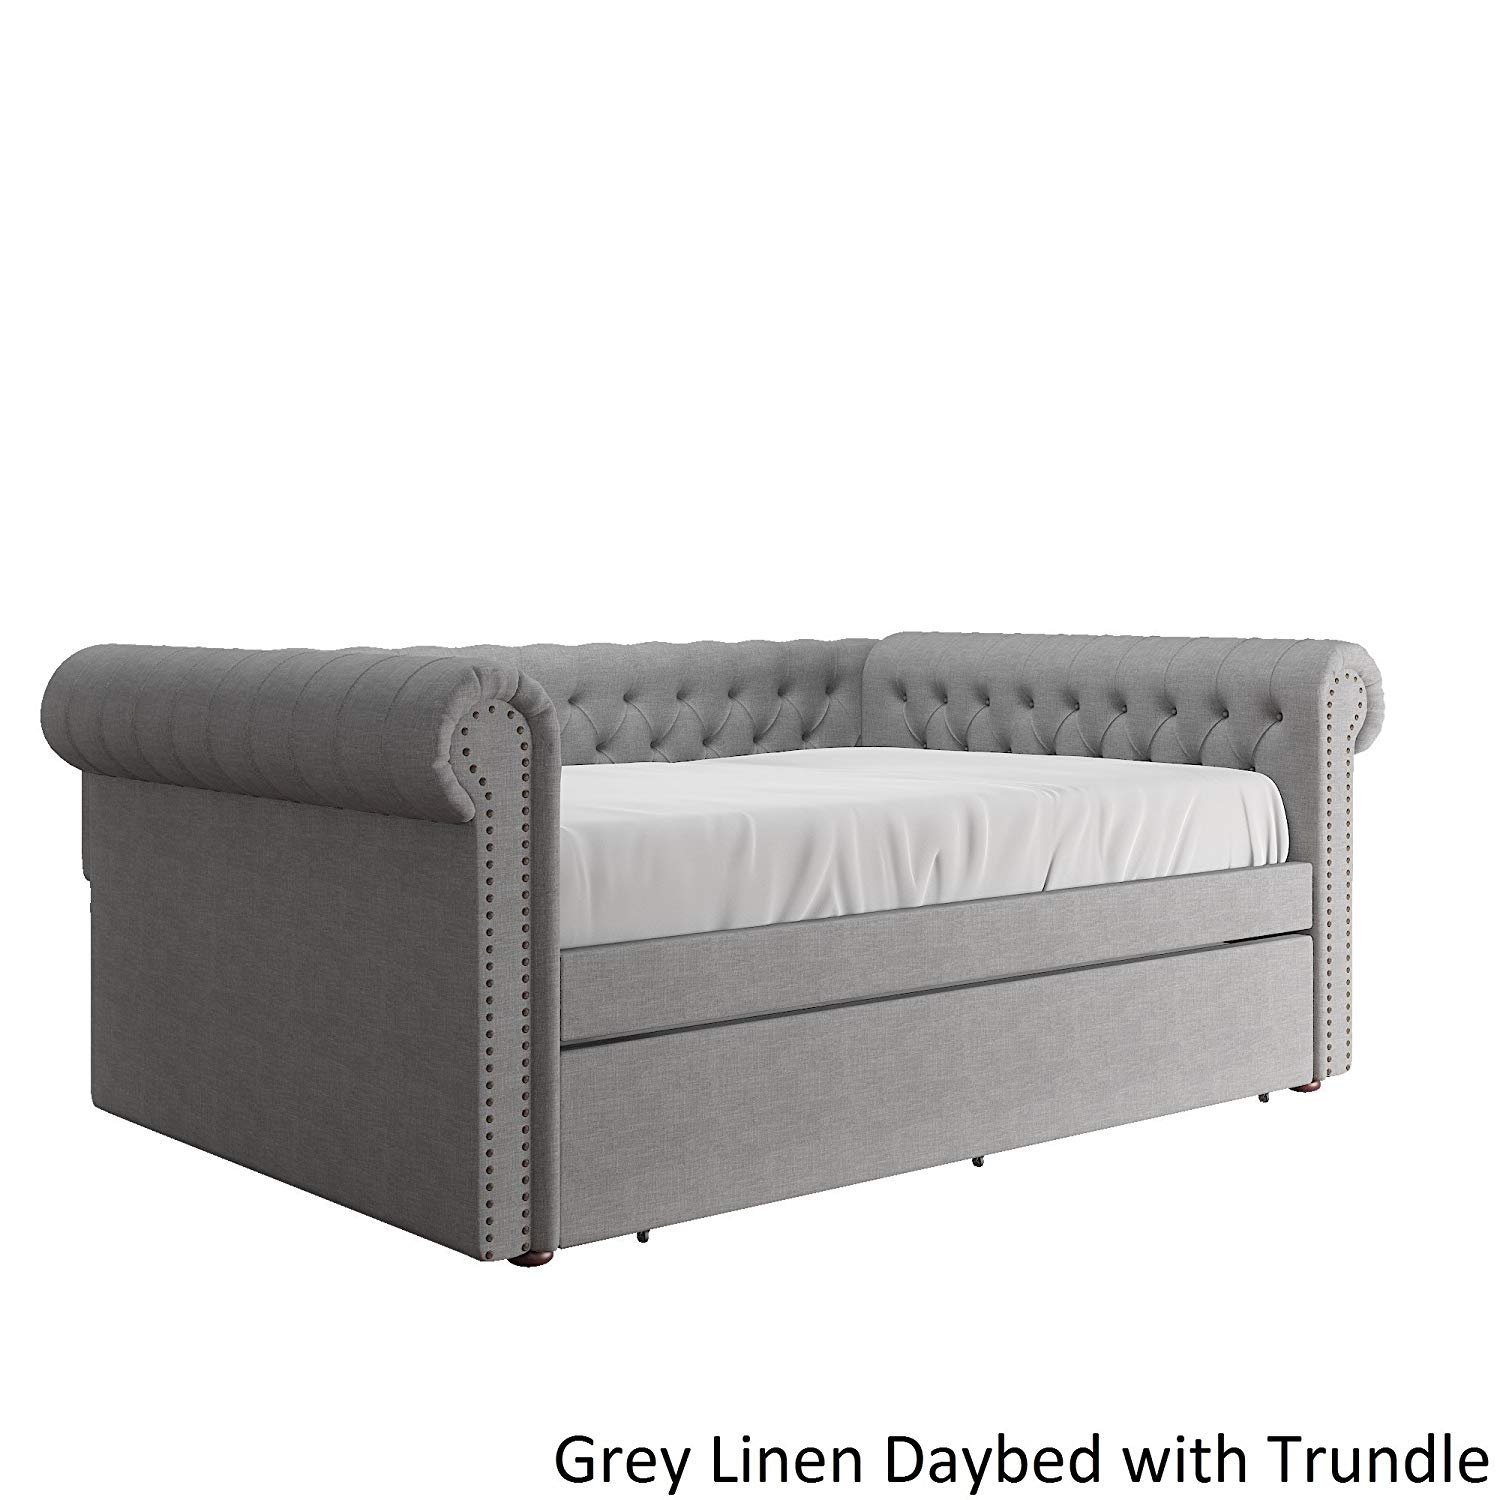 Transitional Style Knightsbridge Queen Size Tufted Scroll Arm Chesterfield Daybed Bronze Finish Nail Head Trim (Grey Linen Daybed WITH Twin - size Trundle)